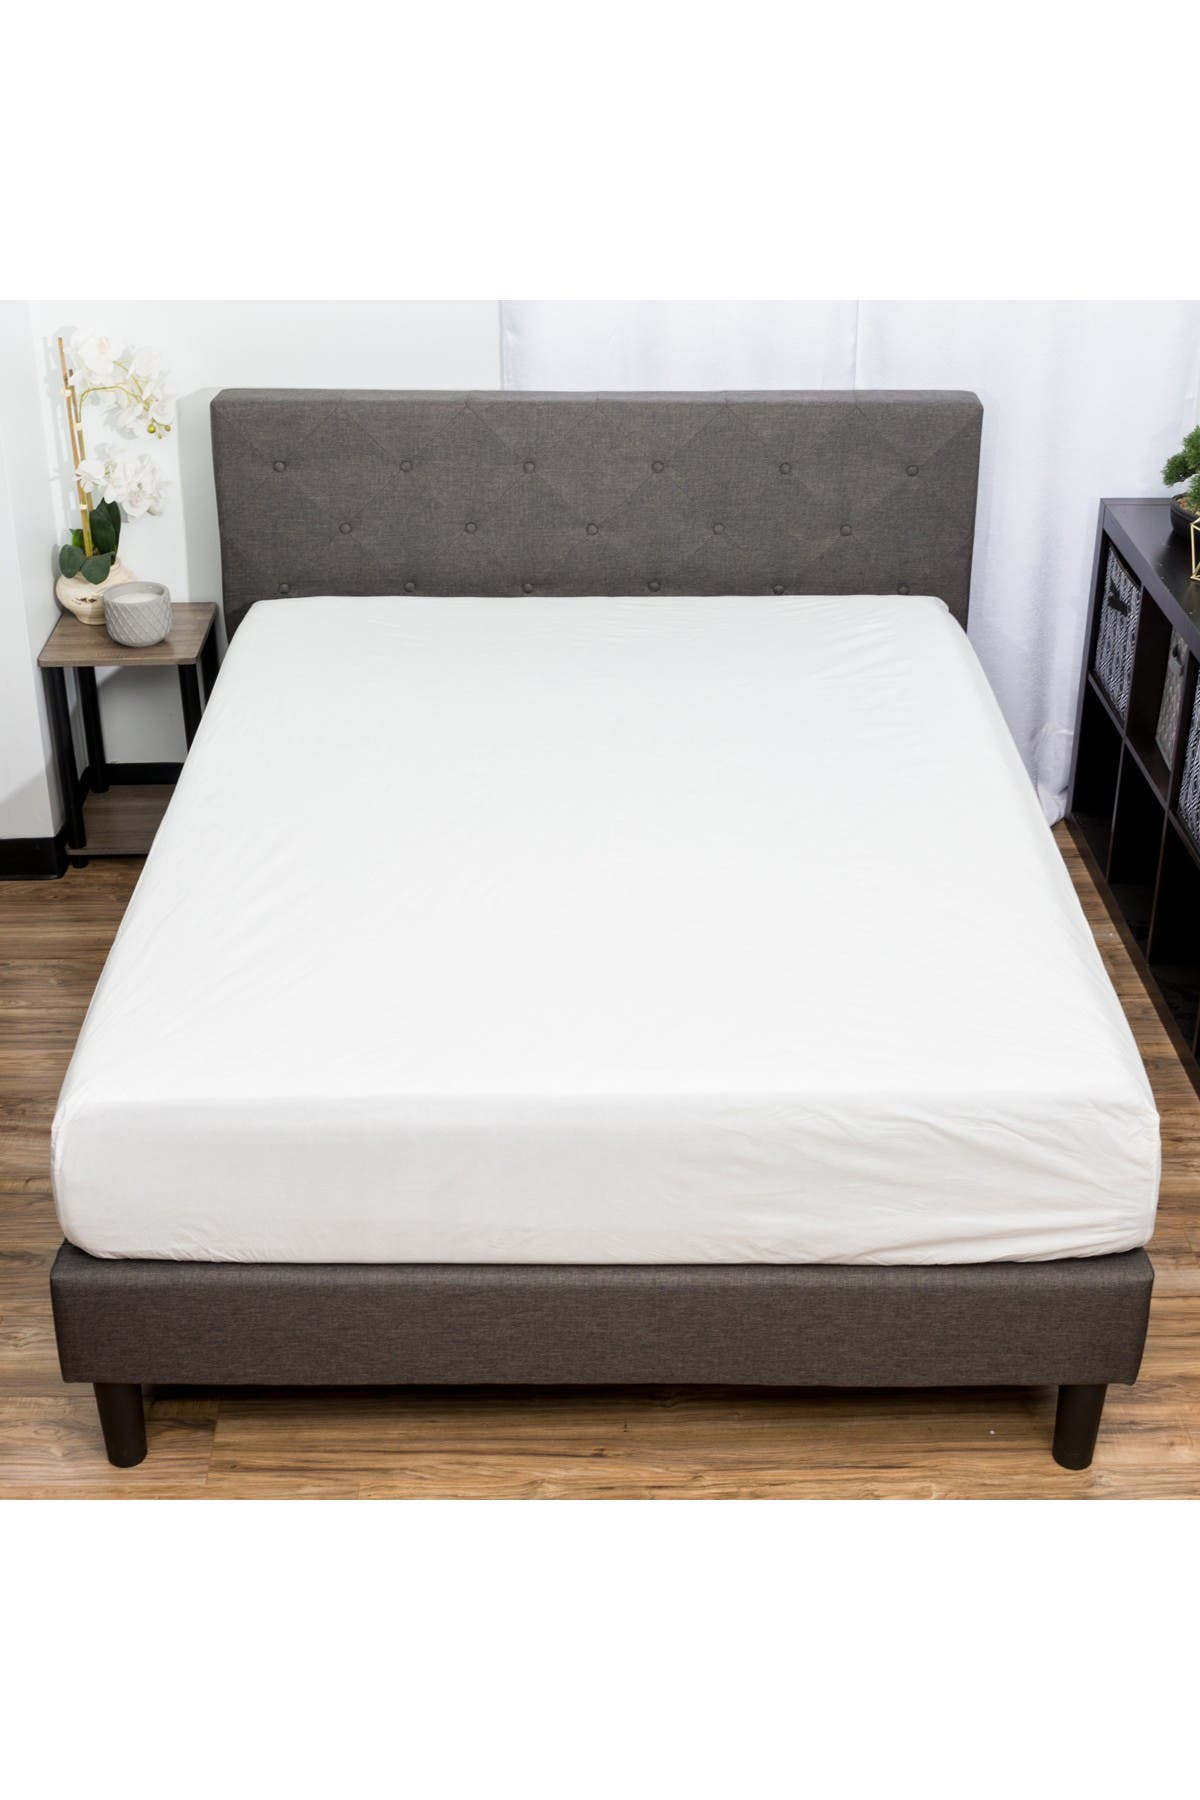 Image of Duck River Textile Full Giuseppe Waterproof Mattress Protector - White